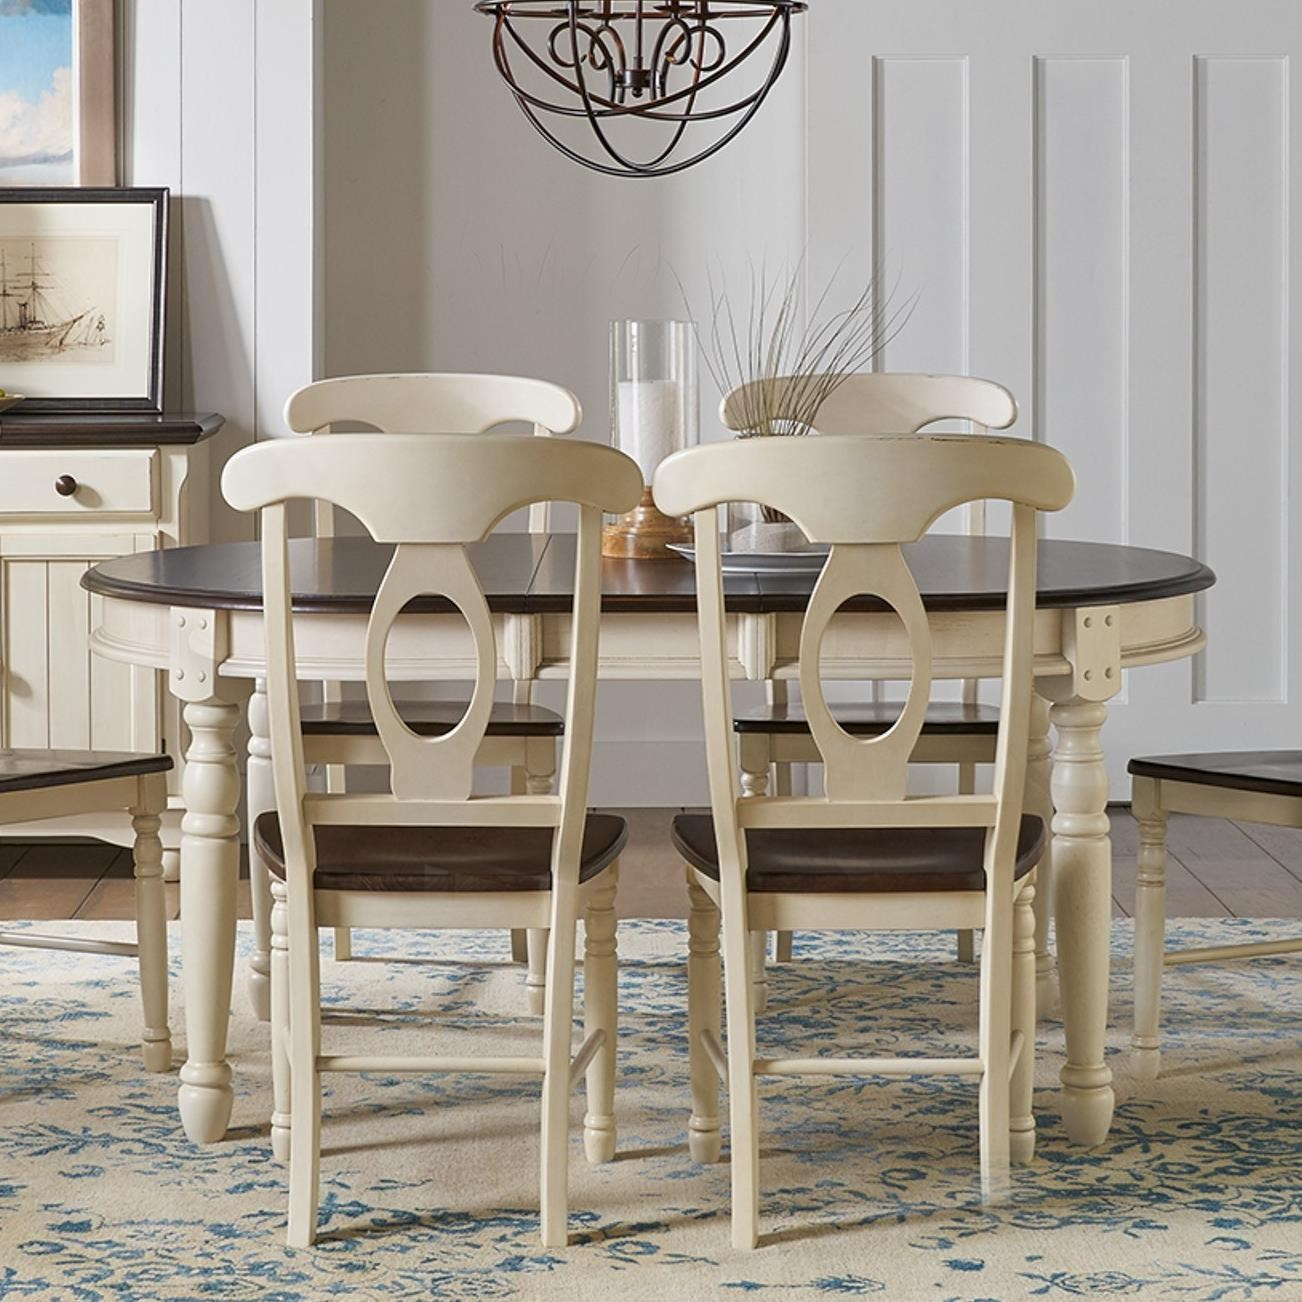 British Isles - CO Oval Leg Table by AAmerica at Dinette Depot